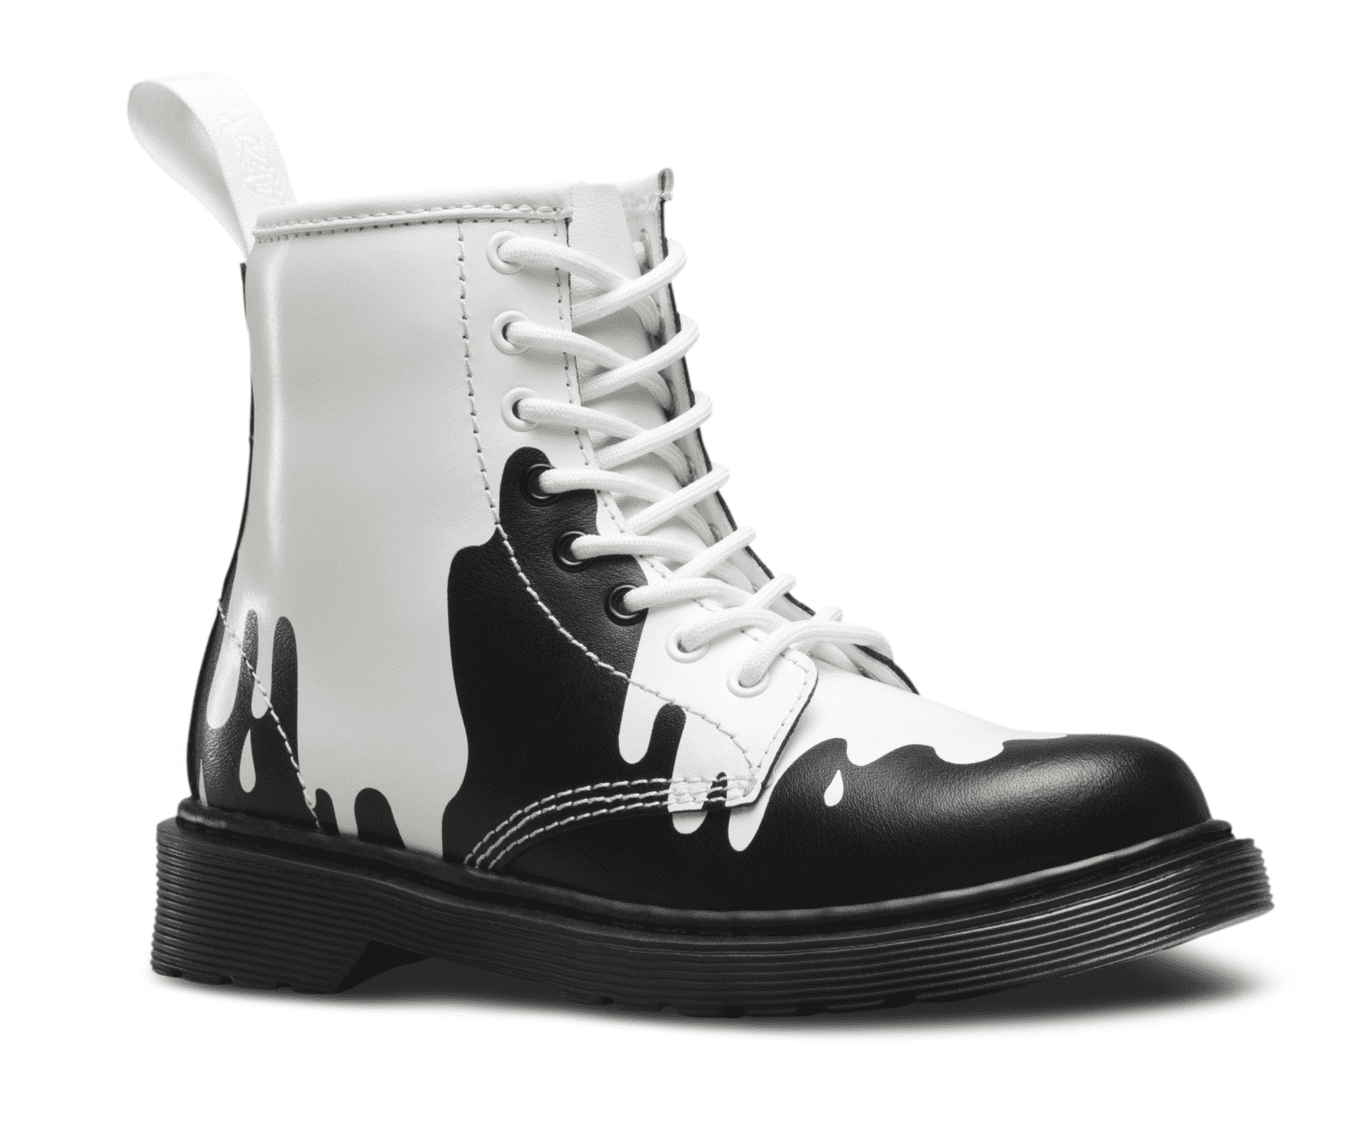 Dr. Martens Kid's Delaney Lace Casual Boots White Leather 3 Little Kid M UK 4 M by Dr. MARTENS